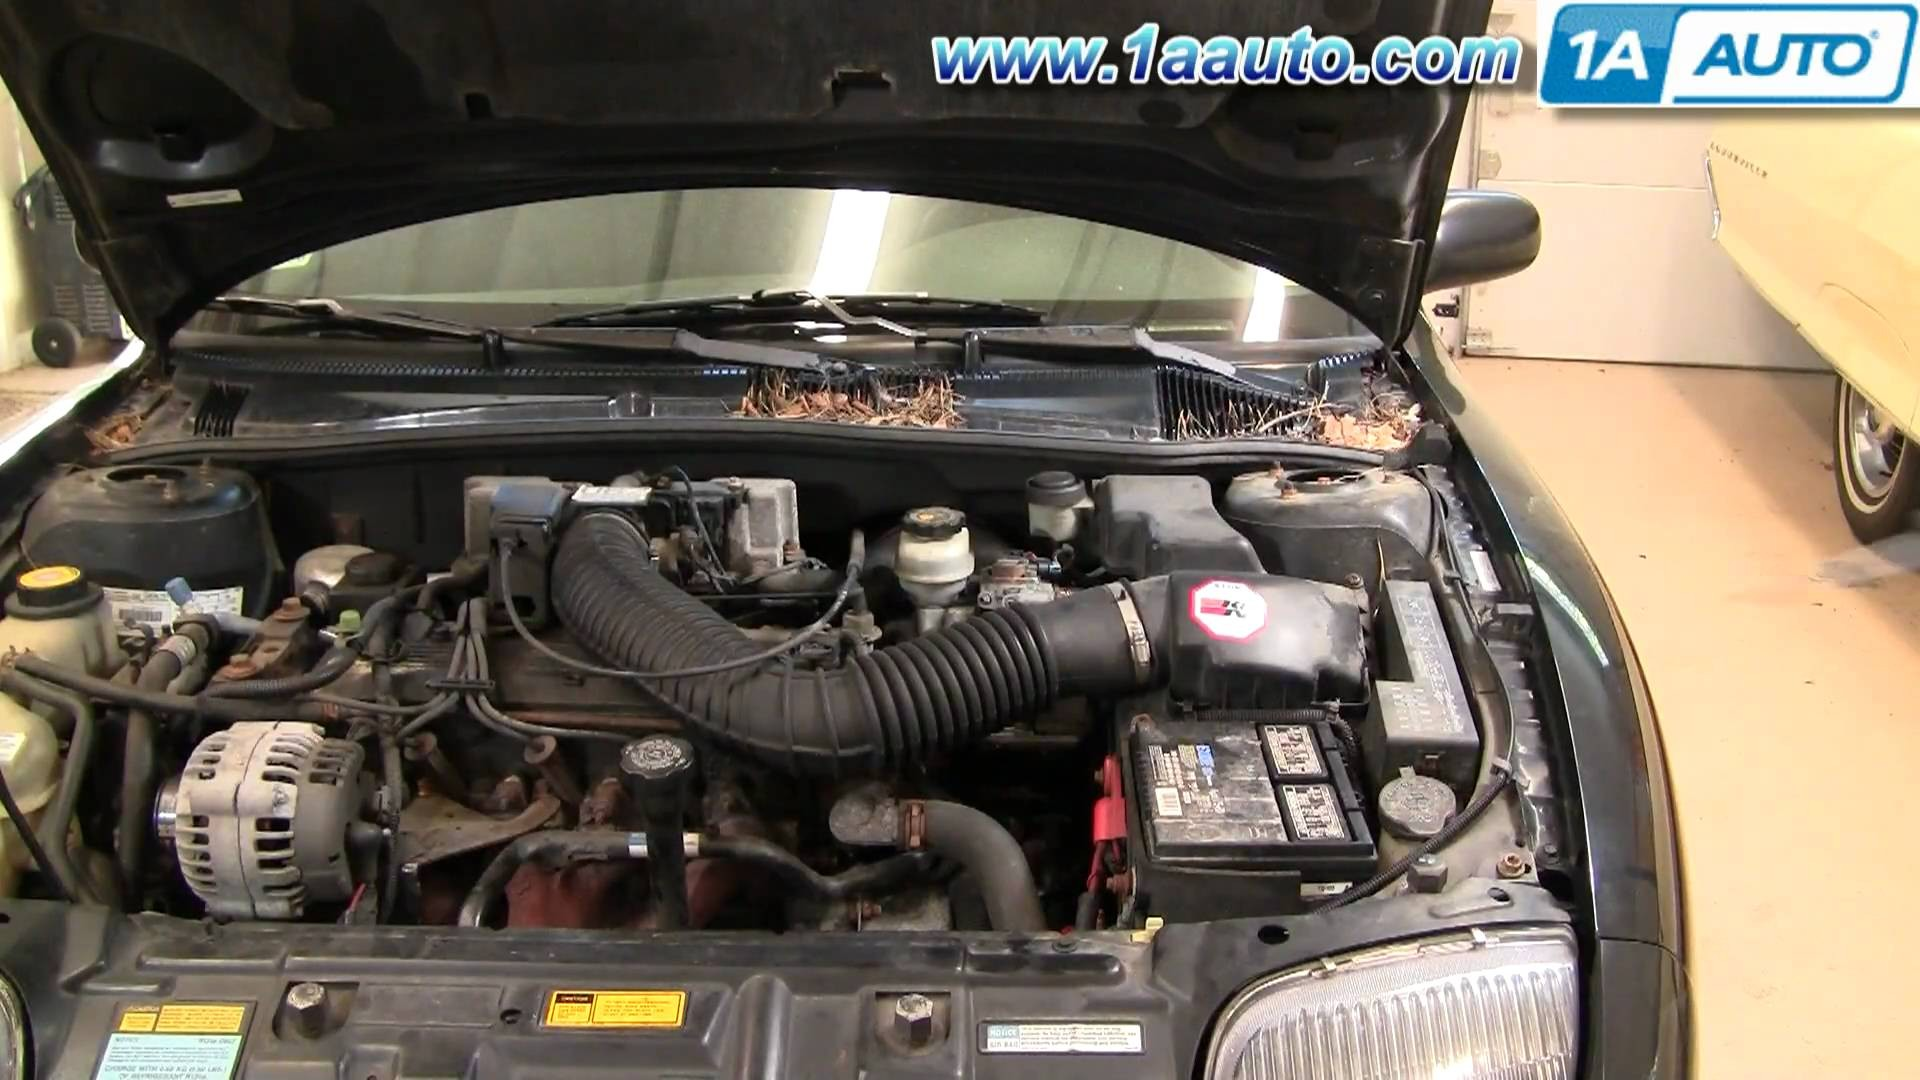 Pontiac Sunfire Engine Diagram My Wiring 1997 How To Install Replace Intake Hose Chevy Cavalier 95 97 1aauto